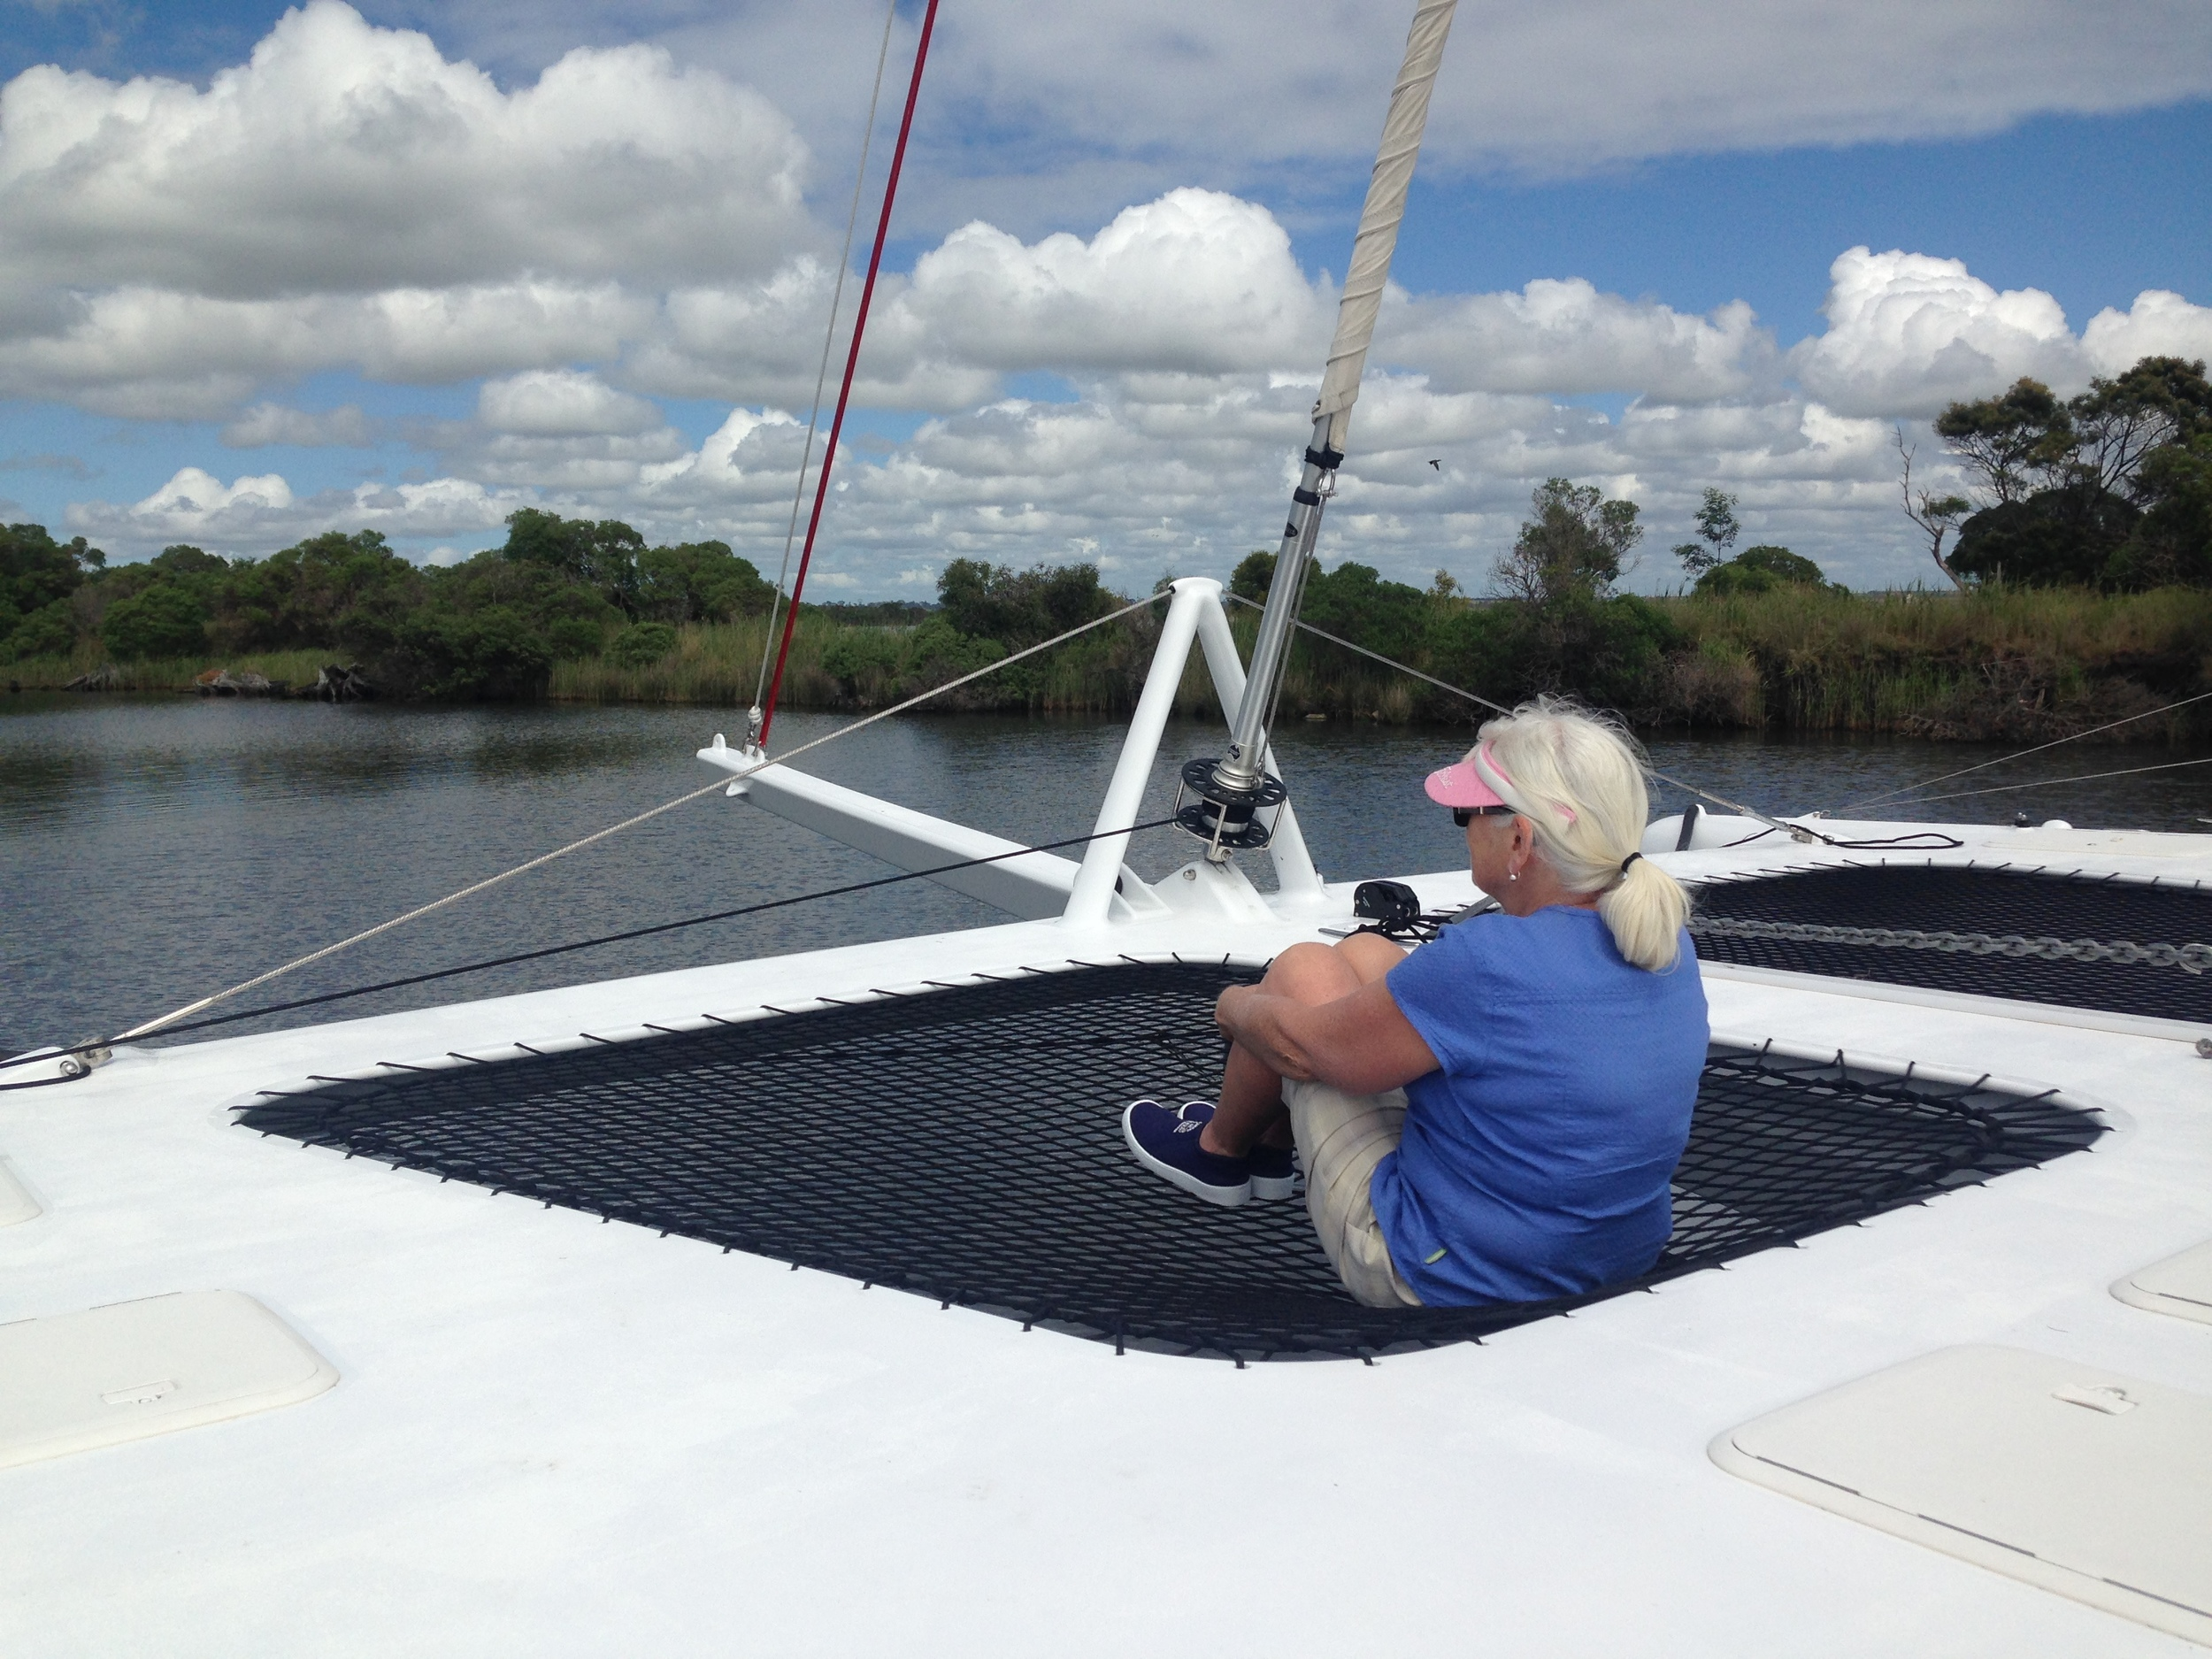 Lois taking in the scenery from the nets, as we cruise up the Mitchell river.  Take a look at some of the beautiful scenery of the Gippsland lakes on  Andy's Blog